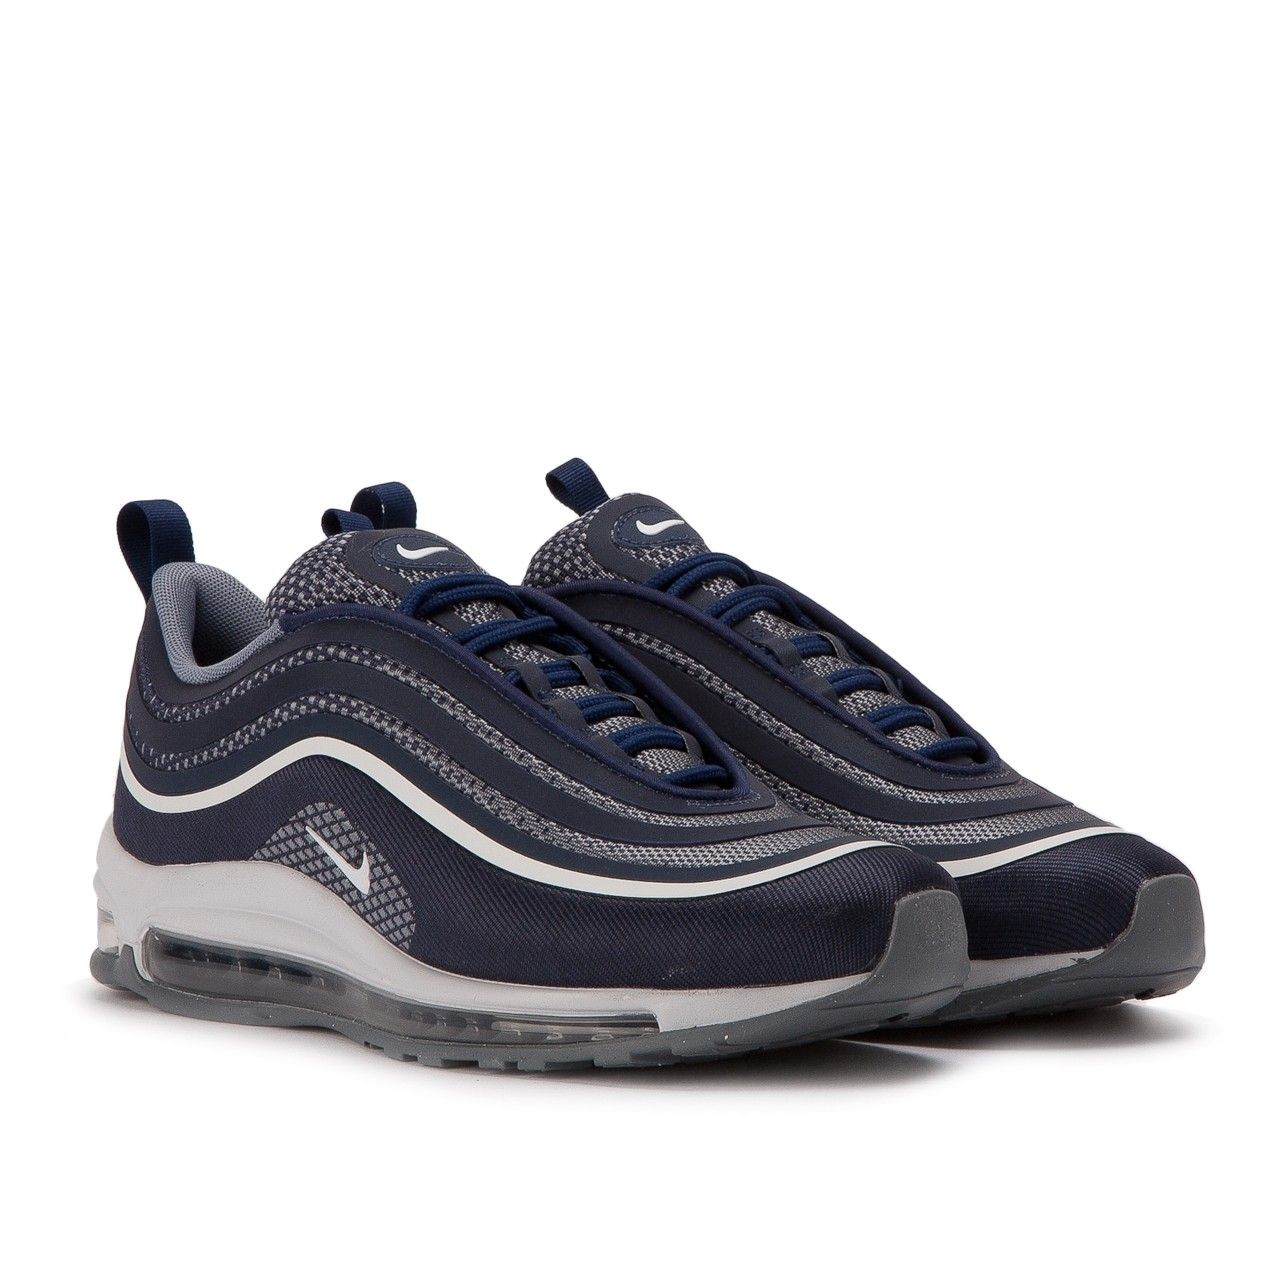 Nike Air Max 97 Ultra '17 (Midnight Navy White) in 2020